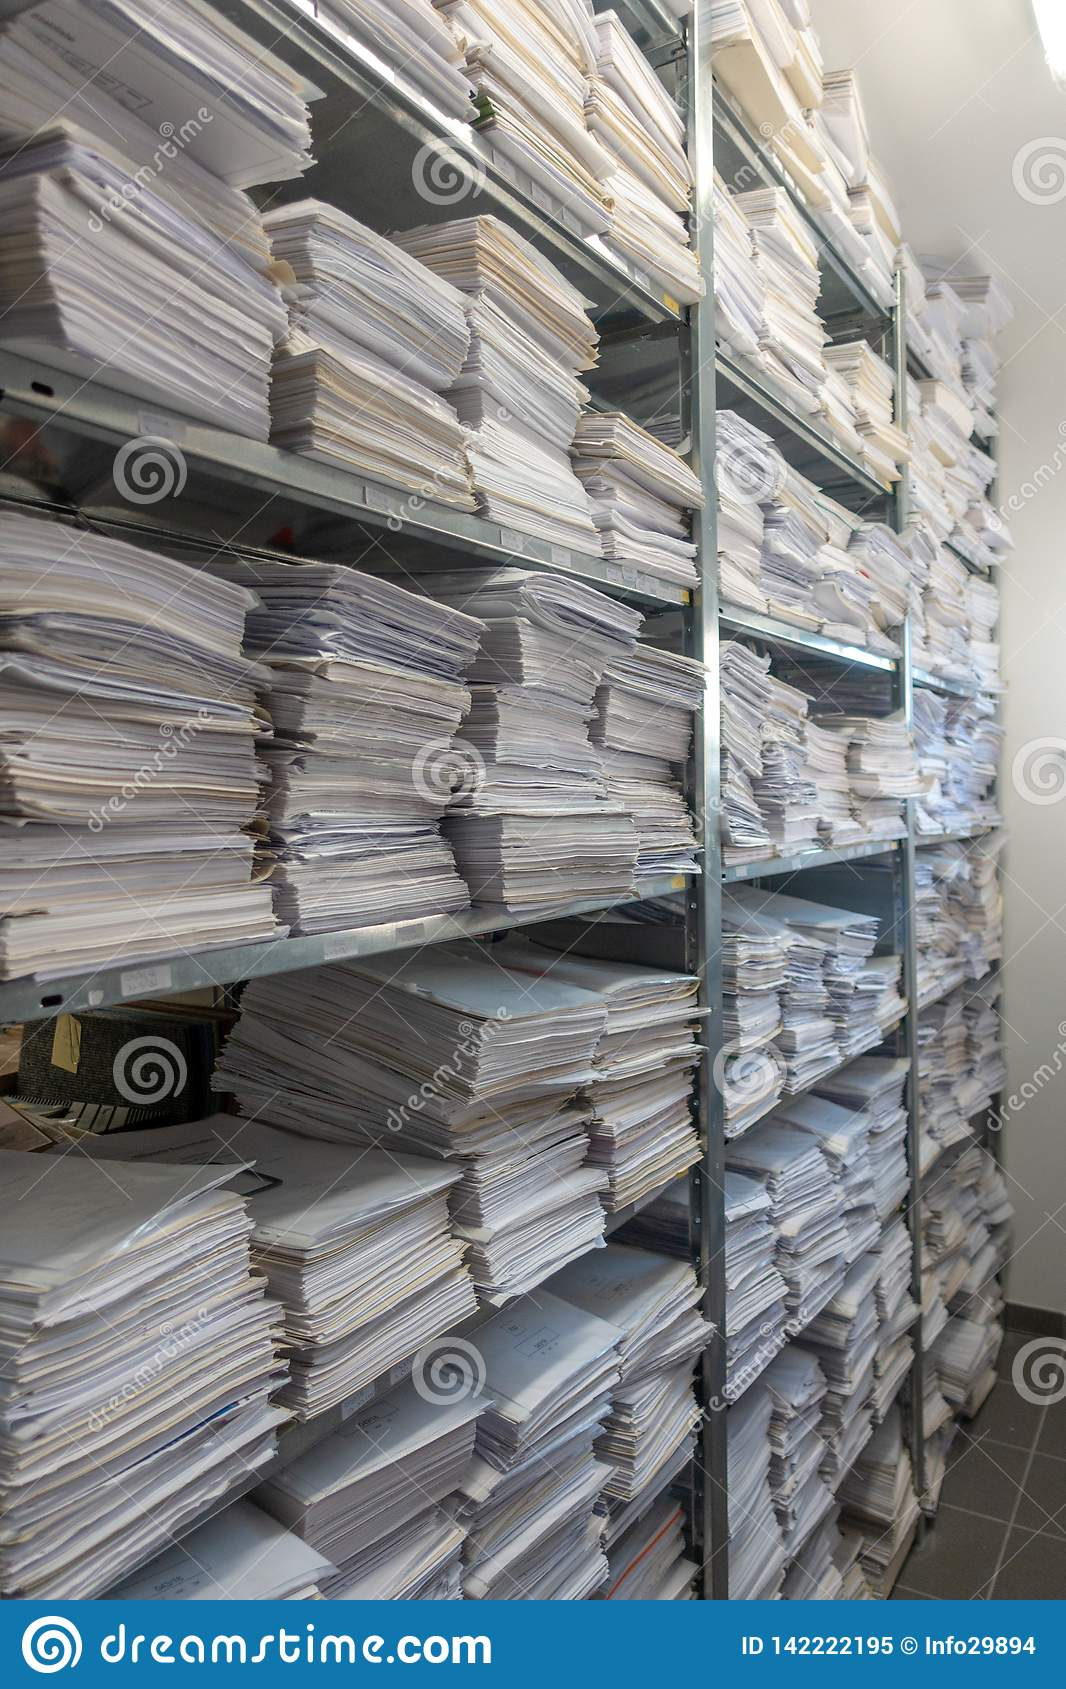 file stacks are stored in one archive